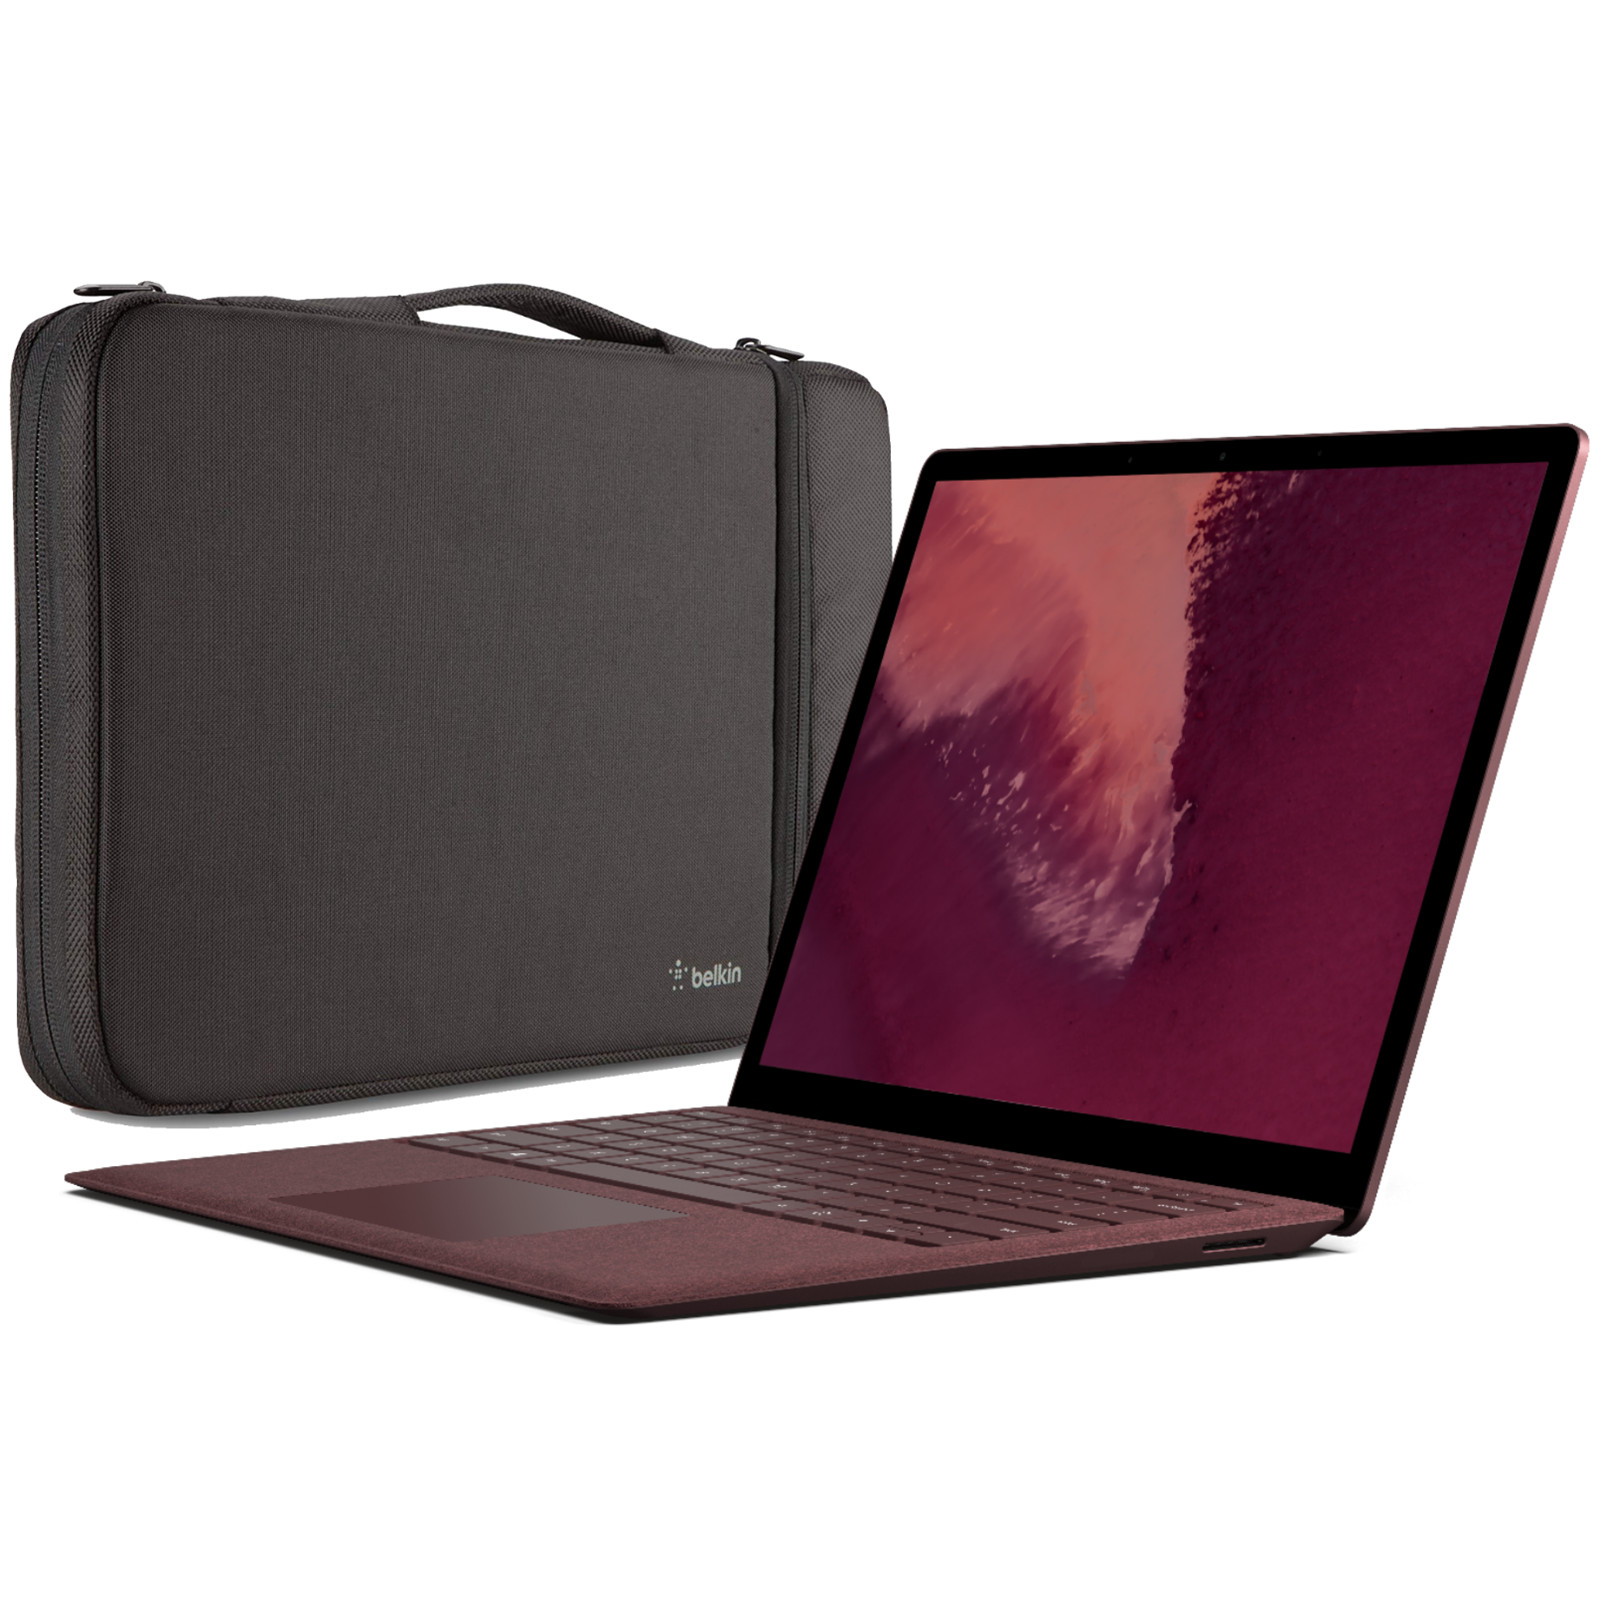 Buy The Microsoft Surface Laptop 2 Education Price I7 8gb Ram 4 Core 256gb Ssd Win10 Home Burgundy Bundle With Belkin Air Protect Sleeve Proof Of Student Id